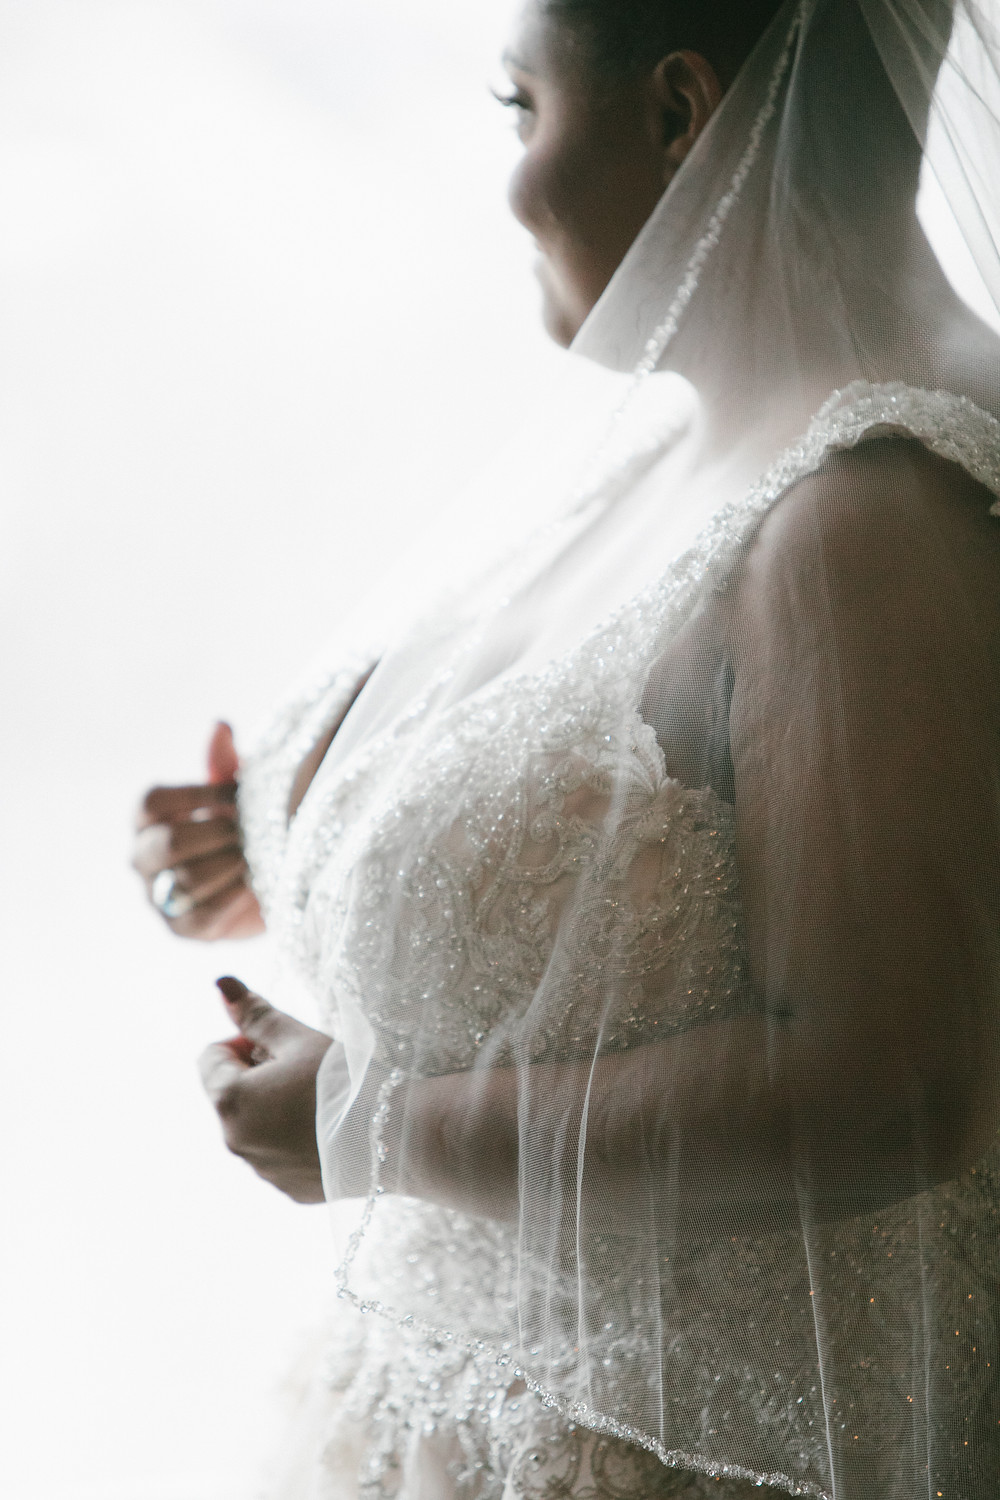 st louis bride and veil